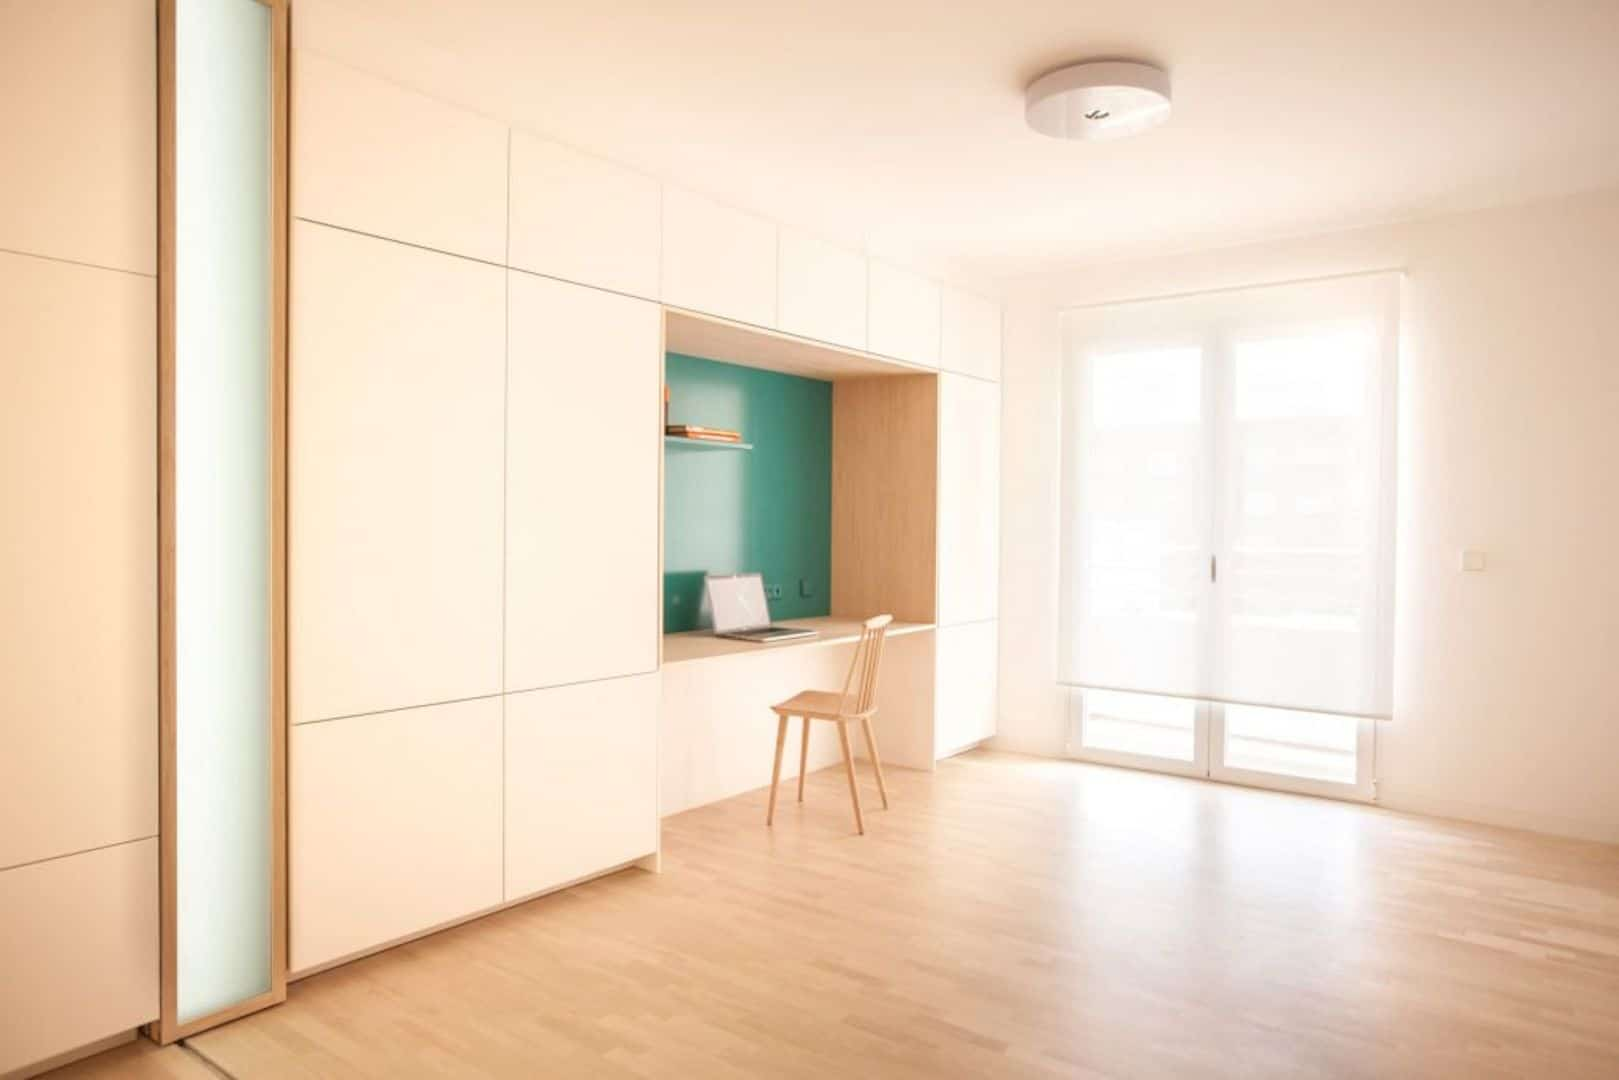 Alicante Apartment Renovation By Diego Lopez Fuster Arquitecture 2